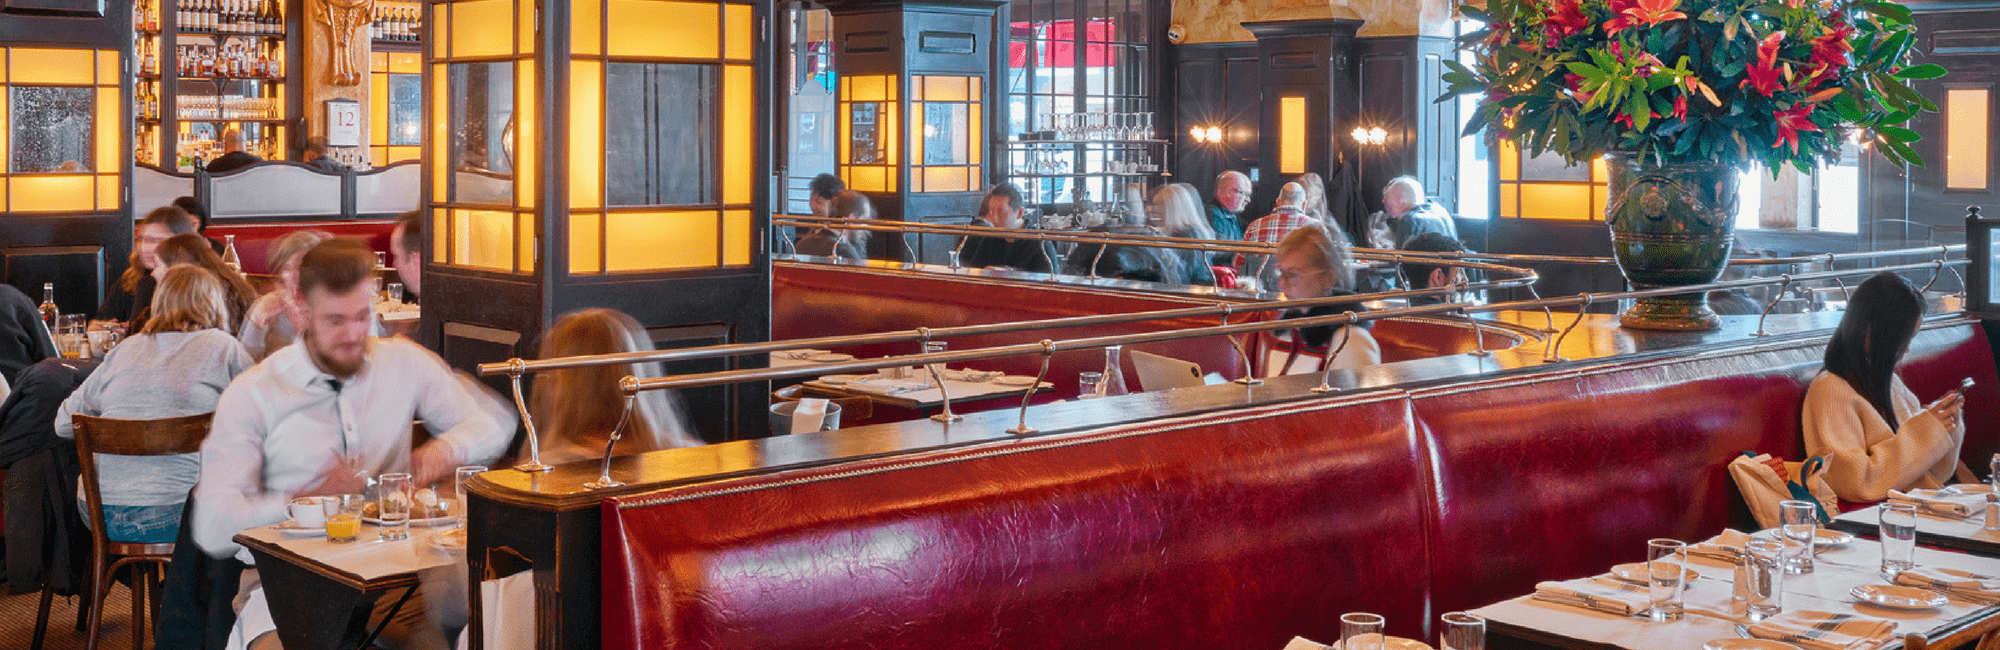 Career and Job Opportunities in Central London at Balthazar